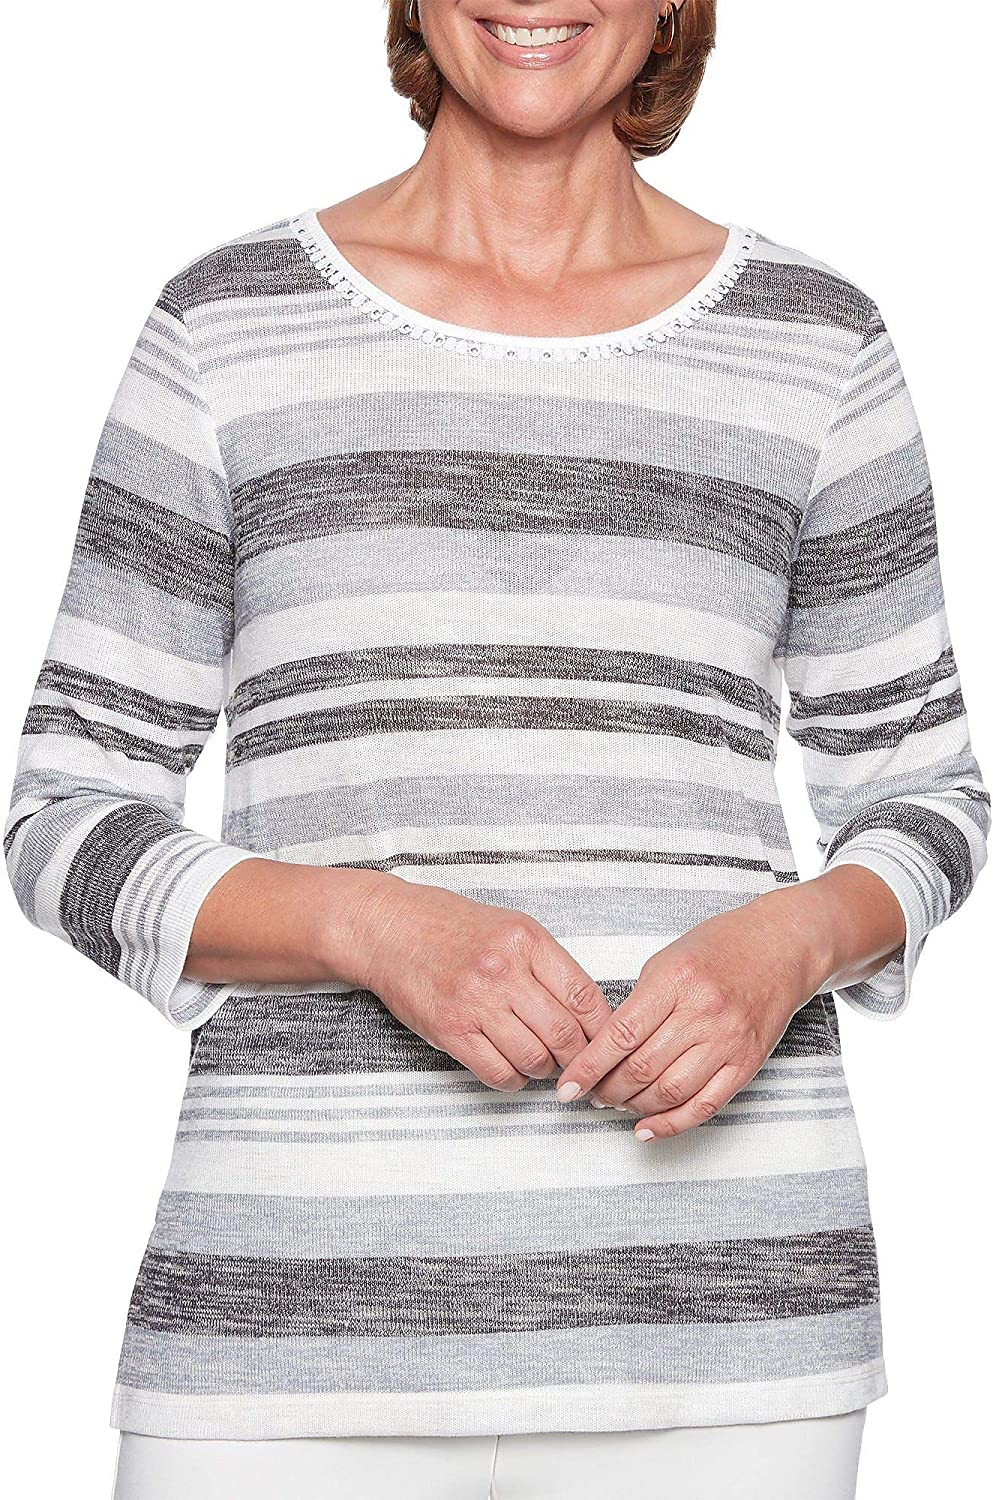 Alfred Dunner Stocking Stuffers Space Dye Stripe Top